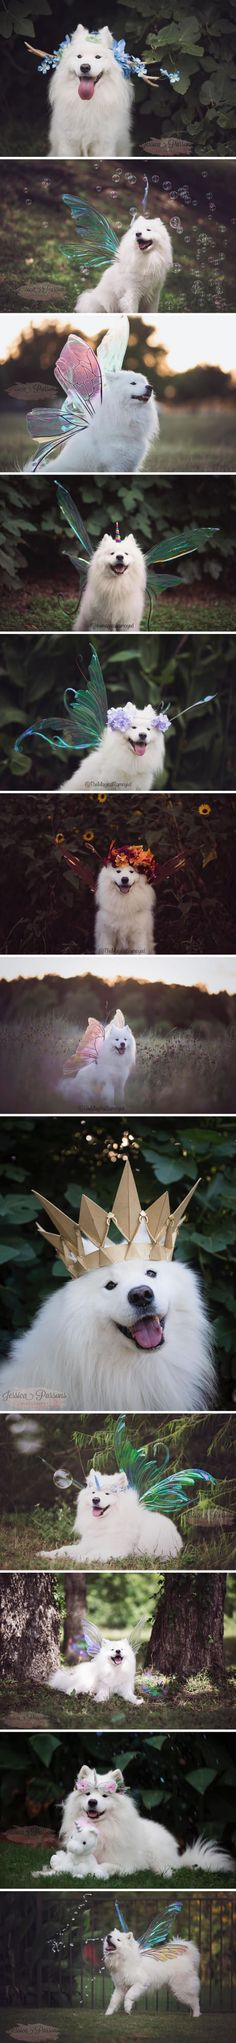 Magical samoyed